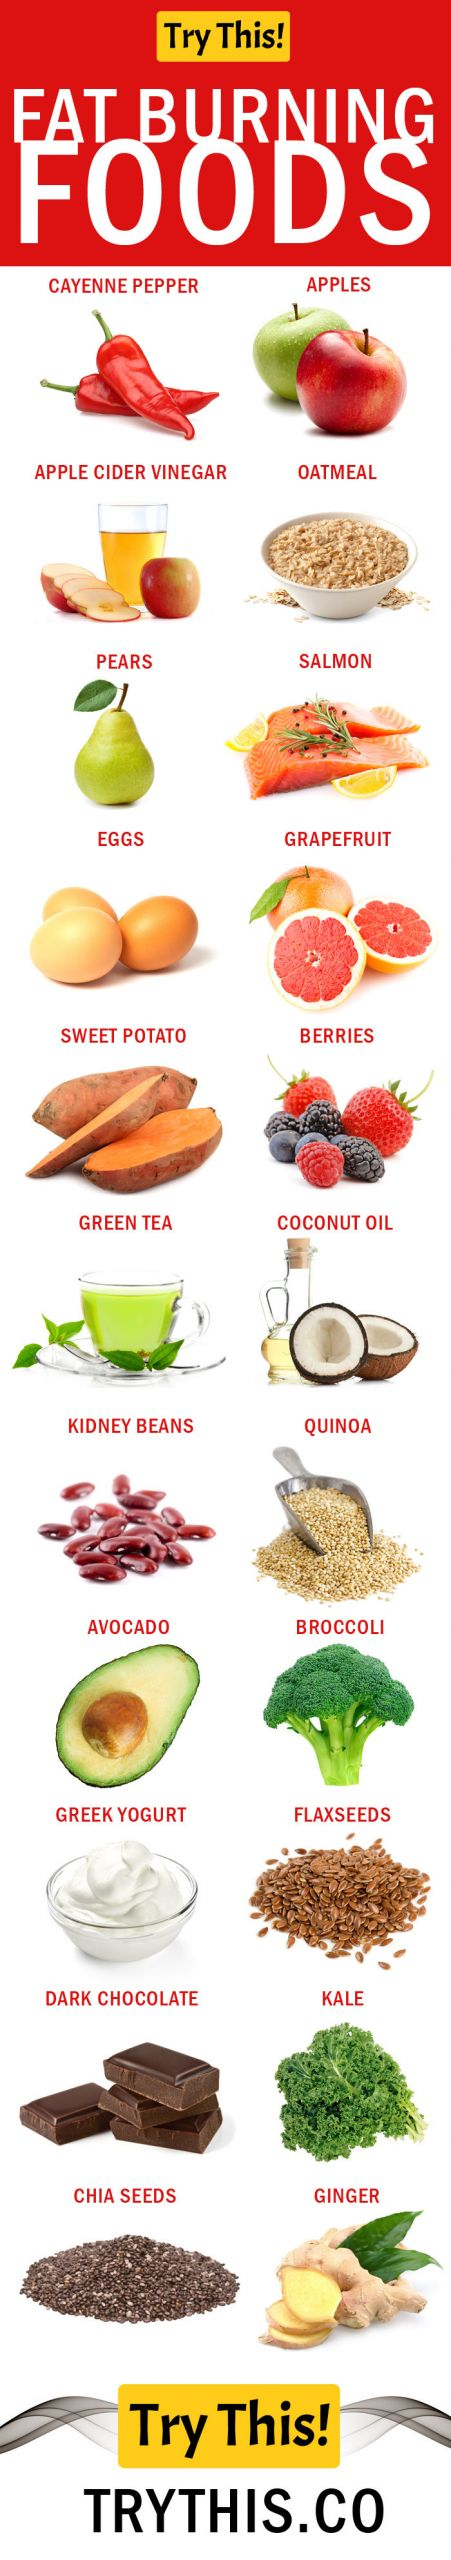 Best Fat Burning Foods  Fat Burning Foods – Best Foods To Eat For Weight Loss